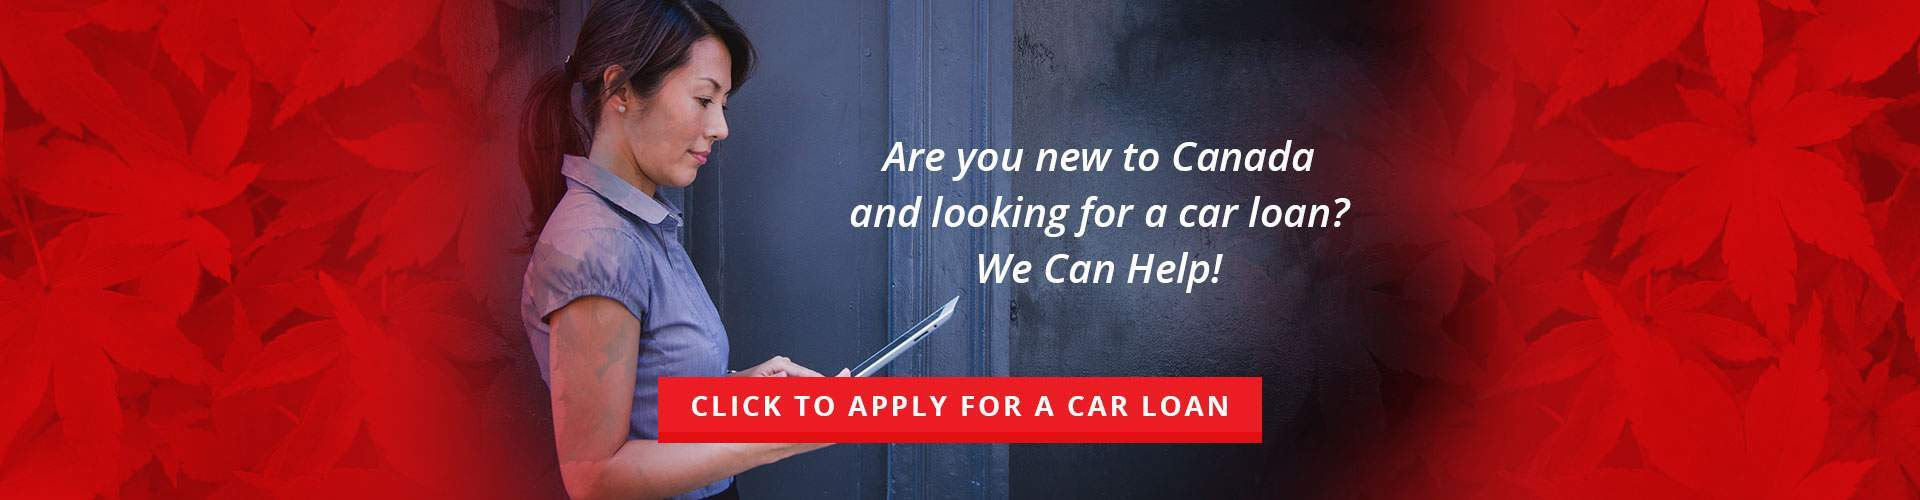 Car Loans for Newcomers to Canada